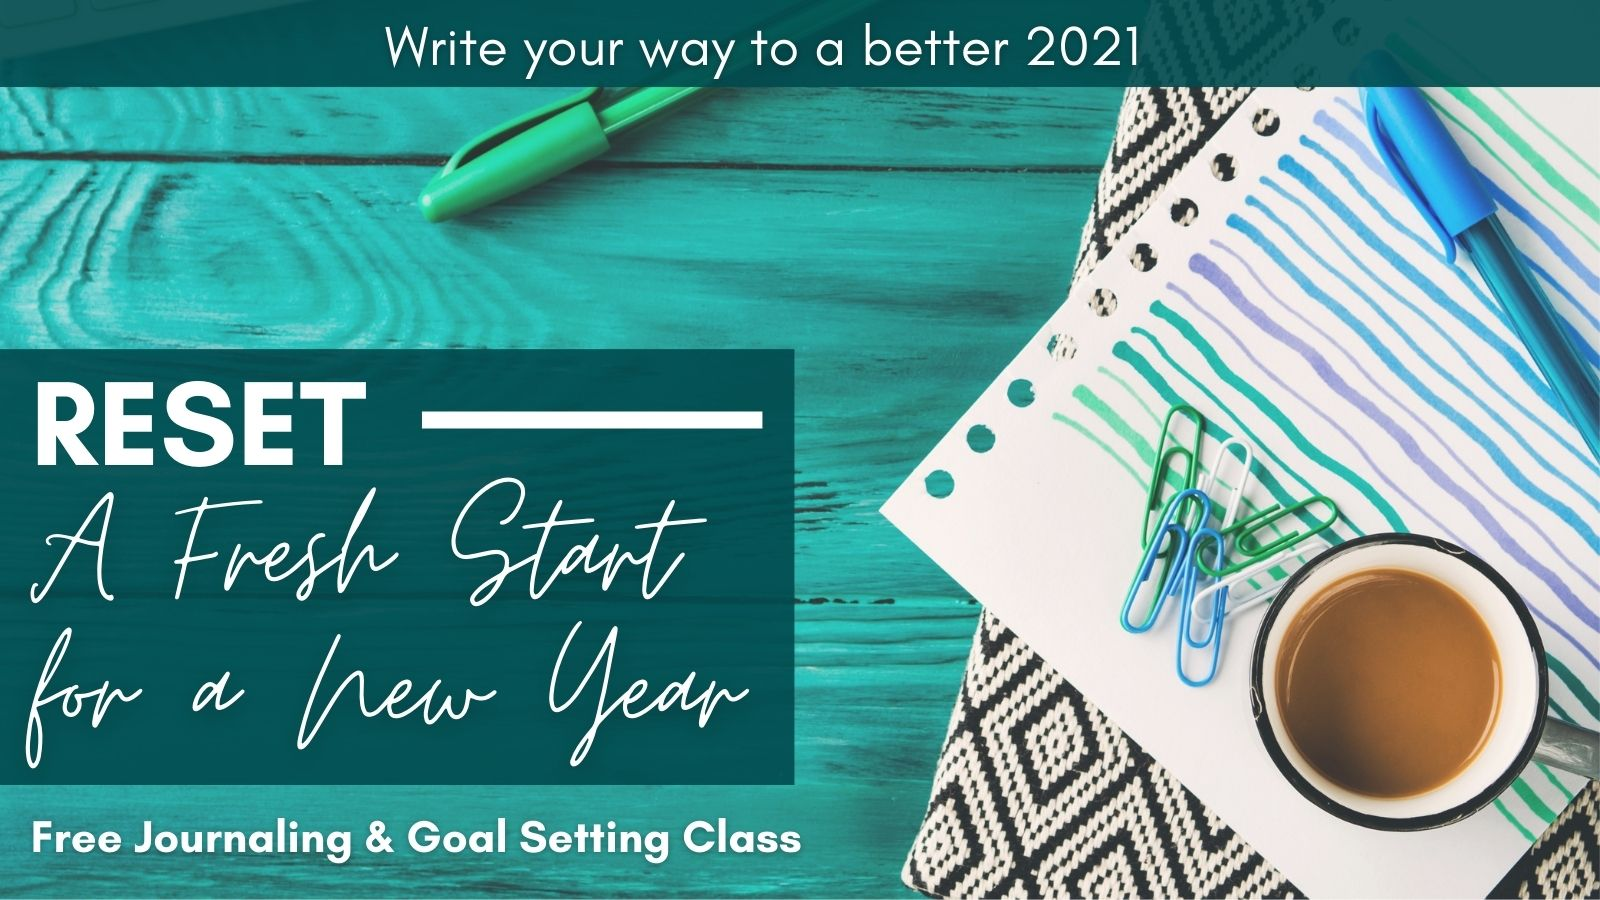 A Fresh Start for the New Year: Are You Ready to Turn the Page on 2020?